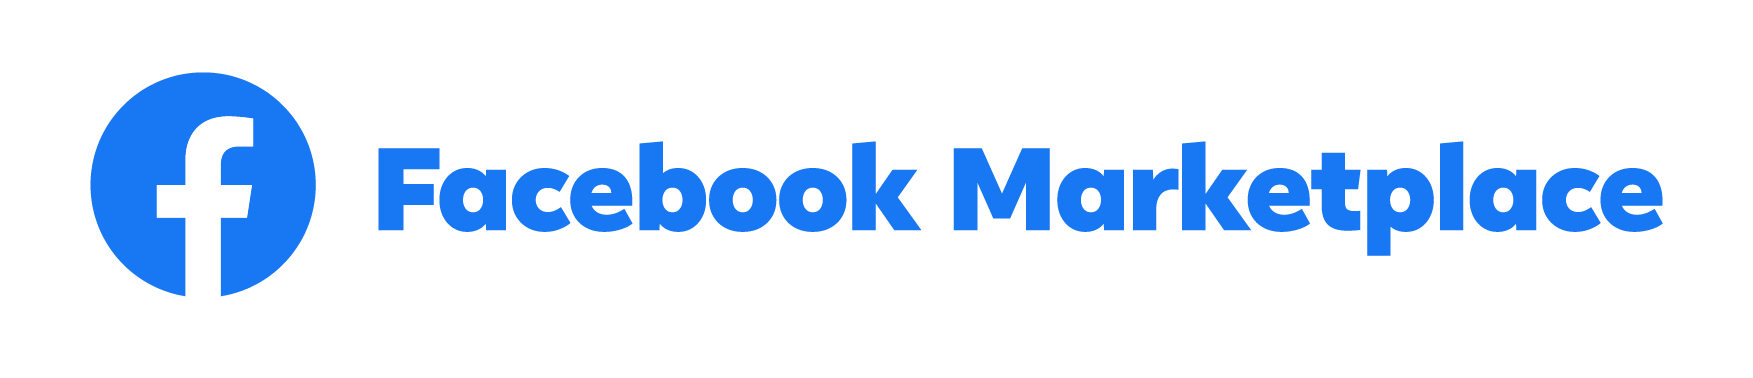 Feed Optimization and Order Management for Facebook Marketplace |  Feedonomics™